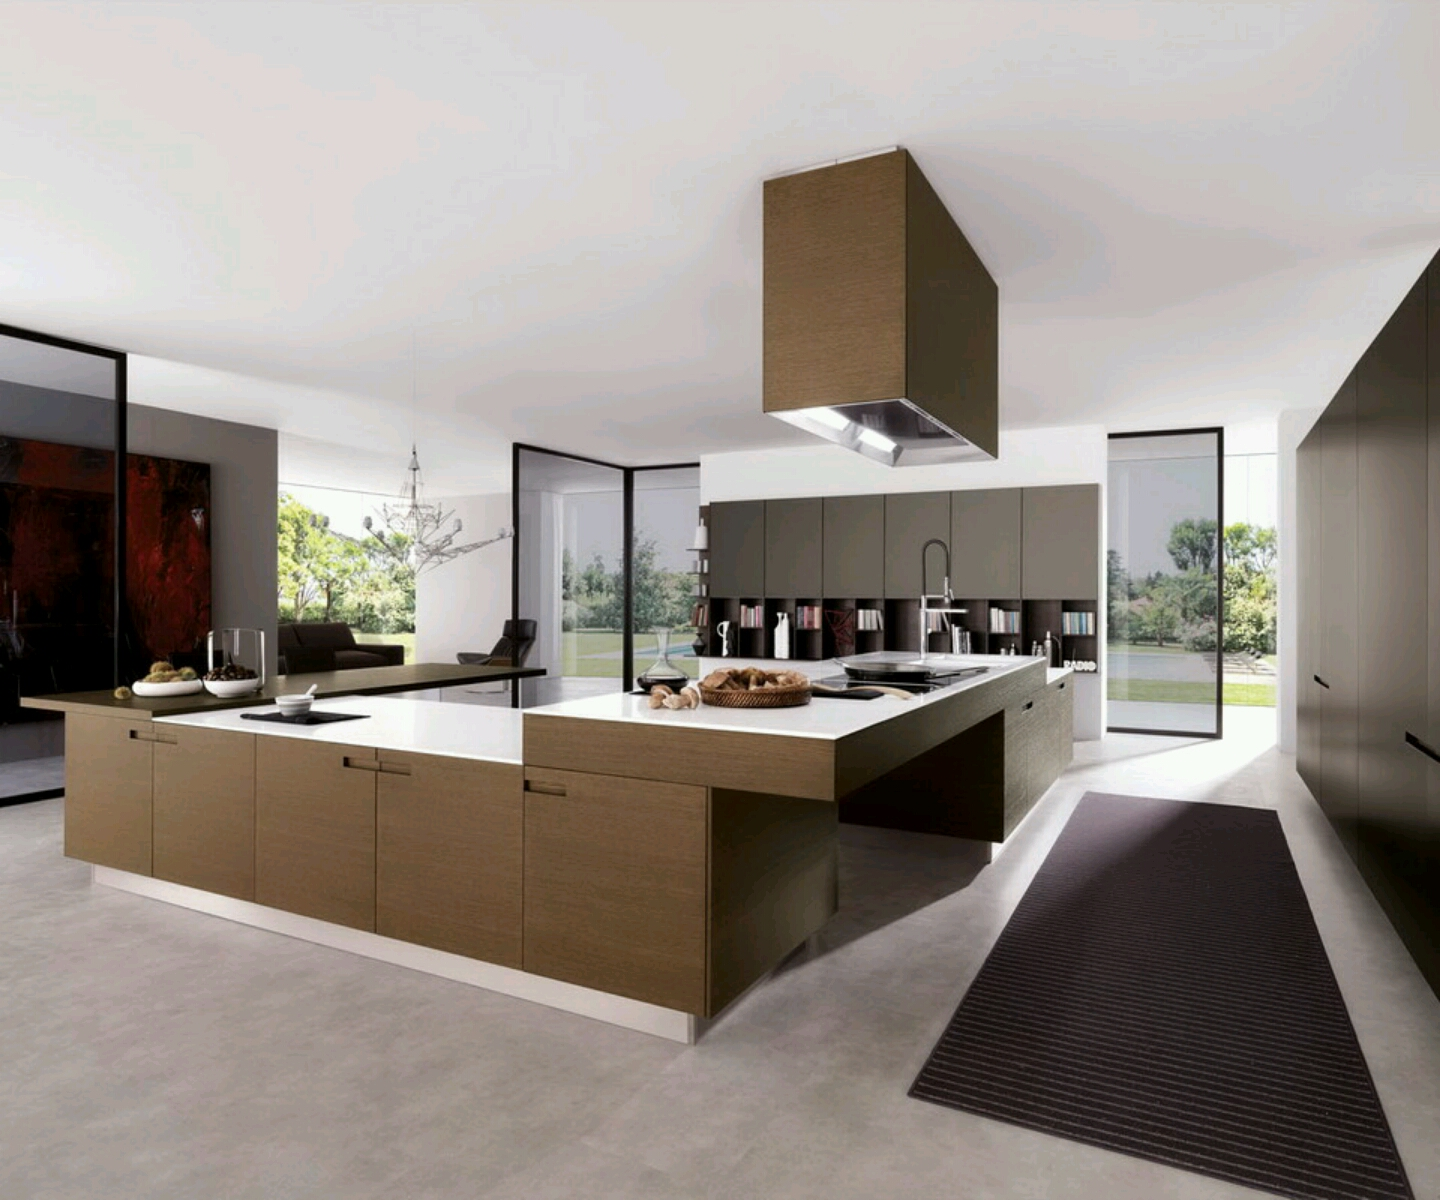 New home designs latest.: Modern kitchen cabinets designs ... on Modern Kitchen Design  id=23703